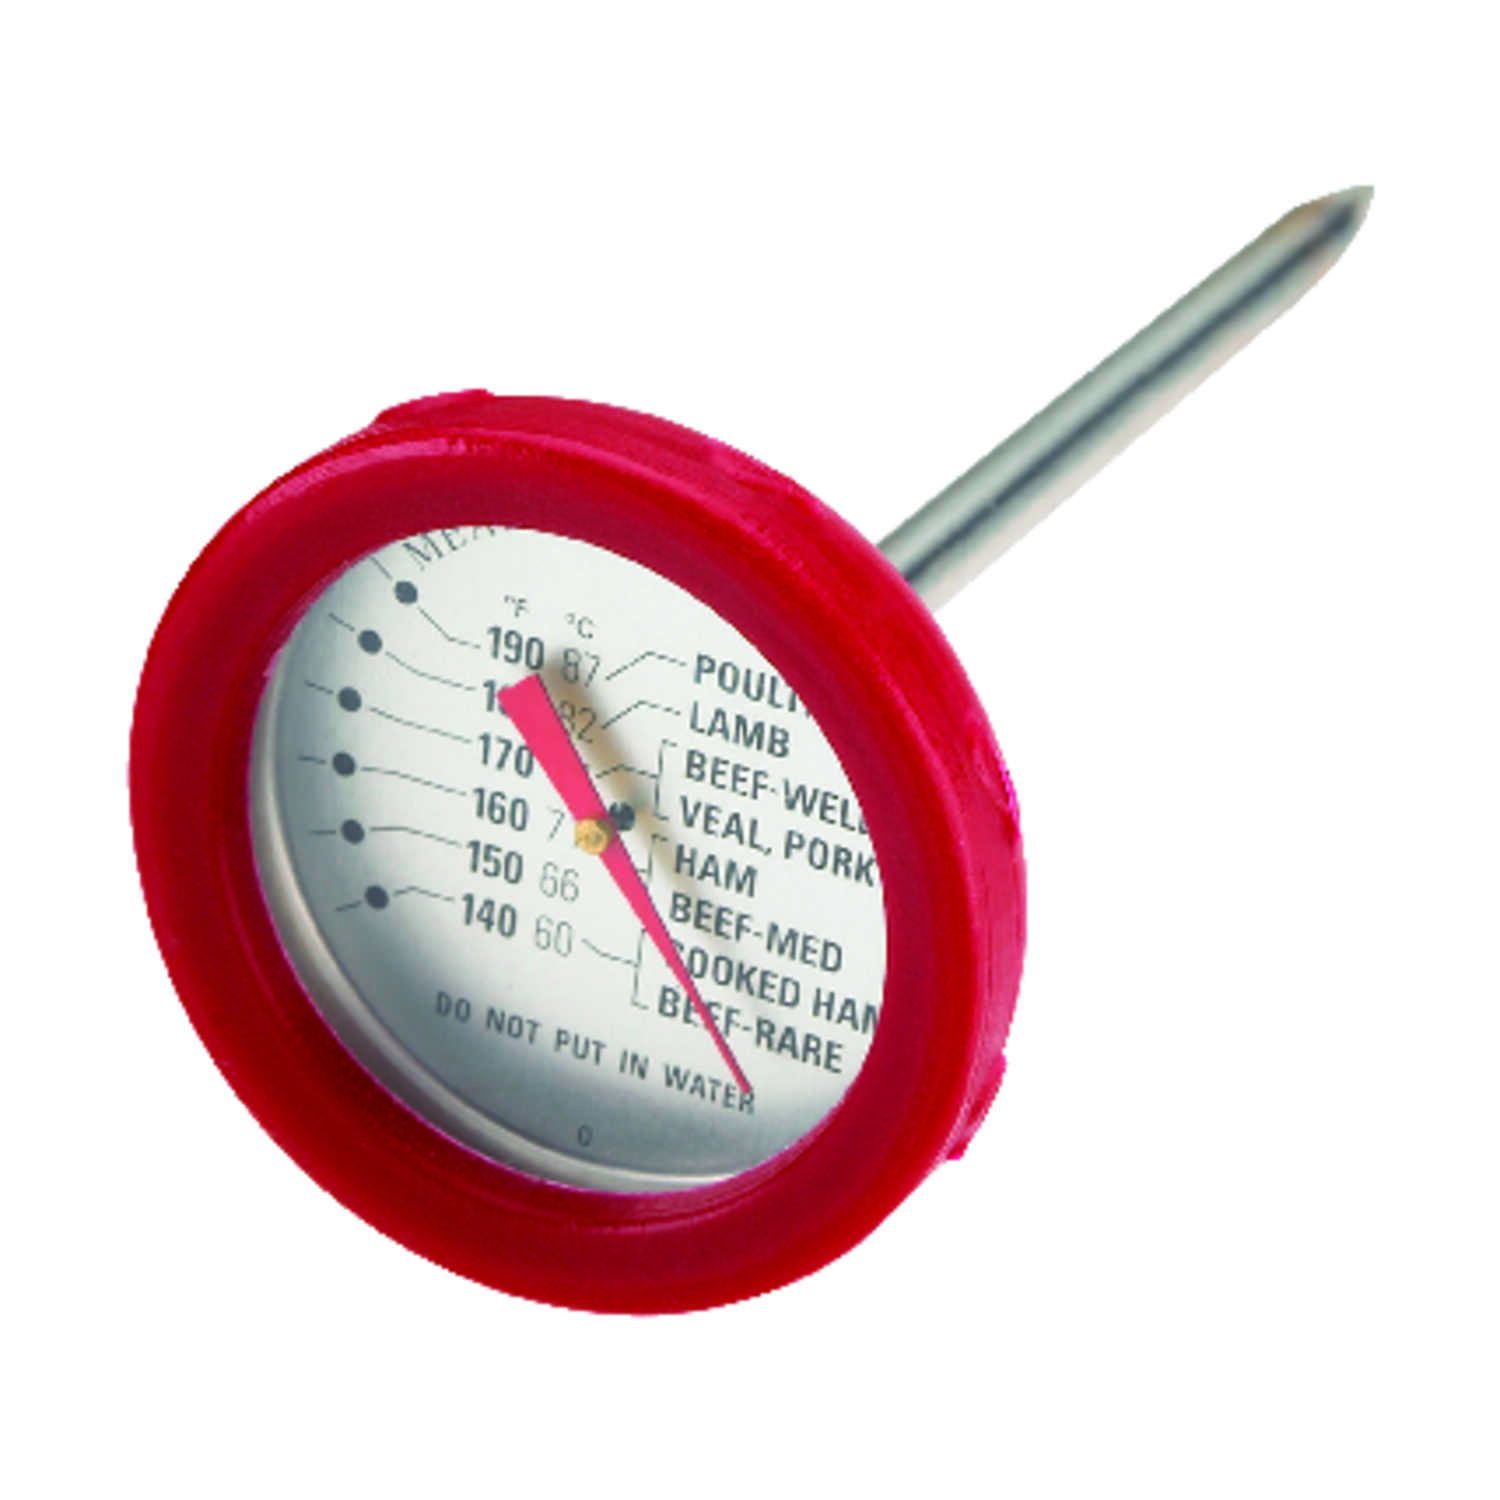 Grill Mark  Stainless Steel  Grill Thermometer  7.8 in. H x 2.3 in. W x 4 in. L